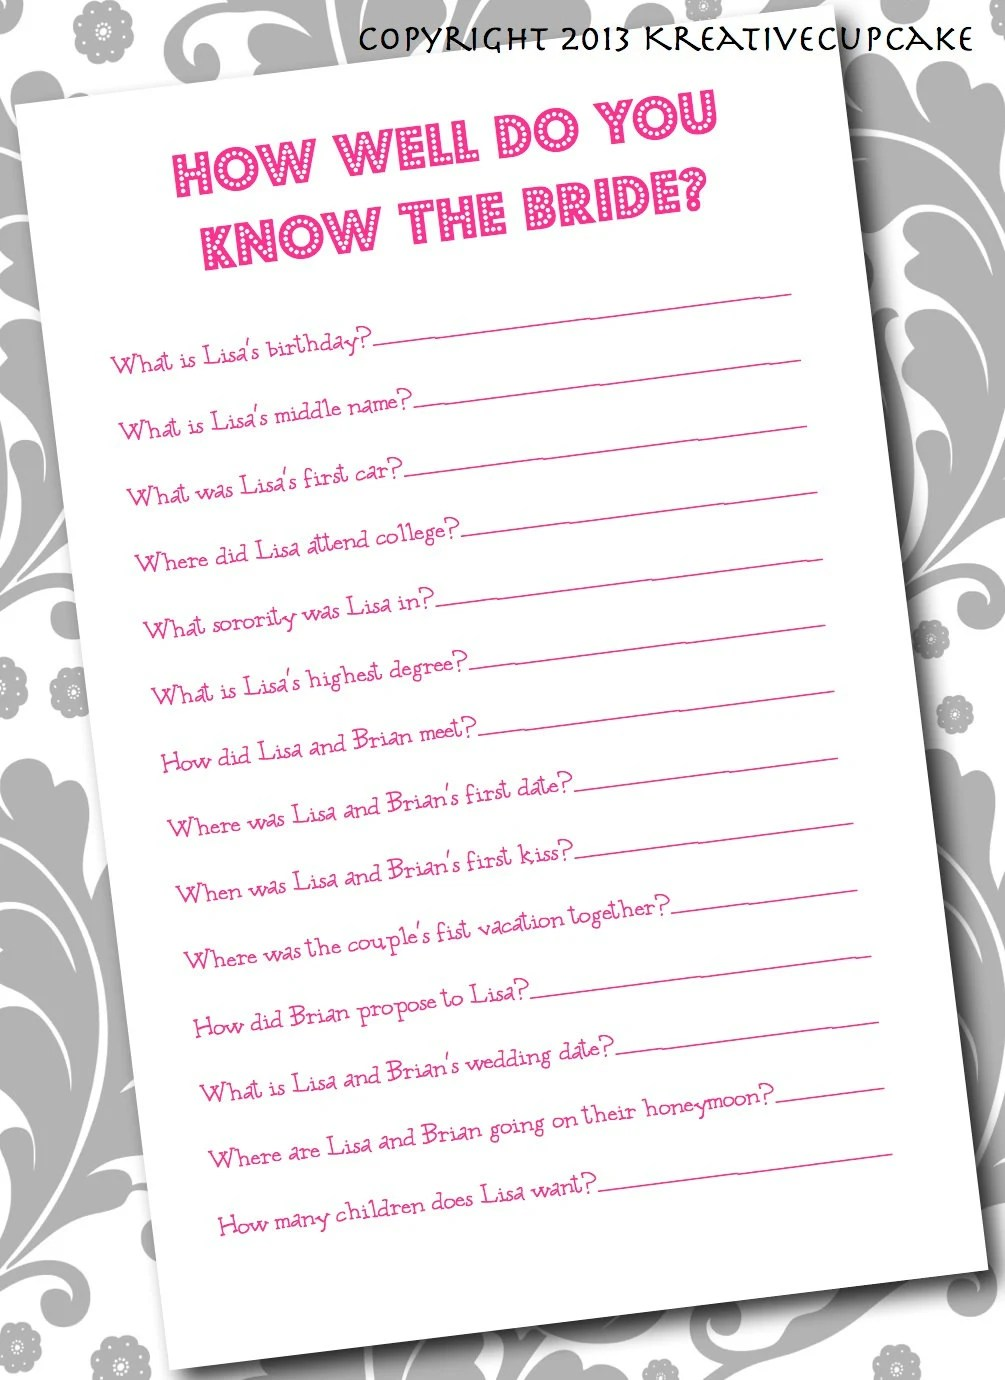 DIY Printable Wedding Mad Libs or printing by KreativeCupcake